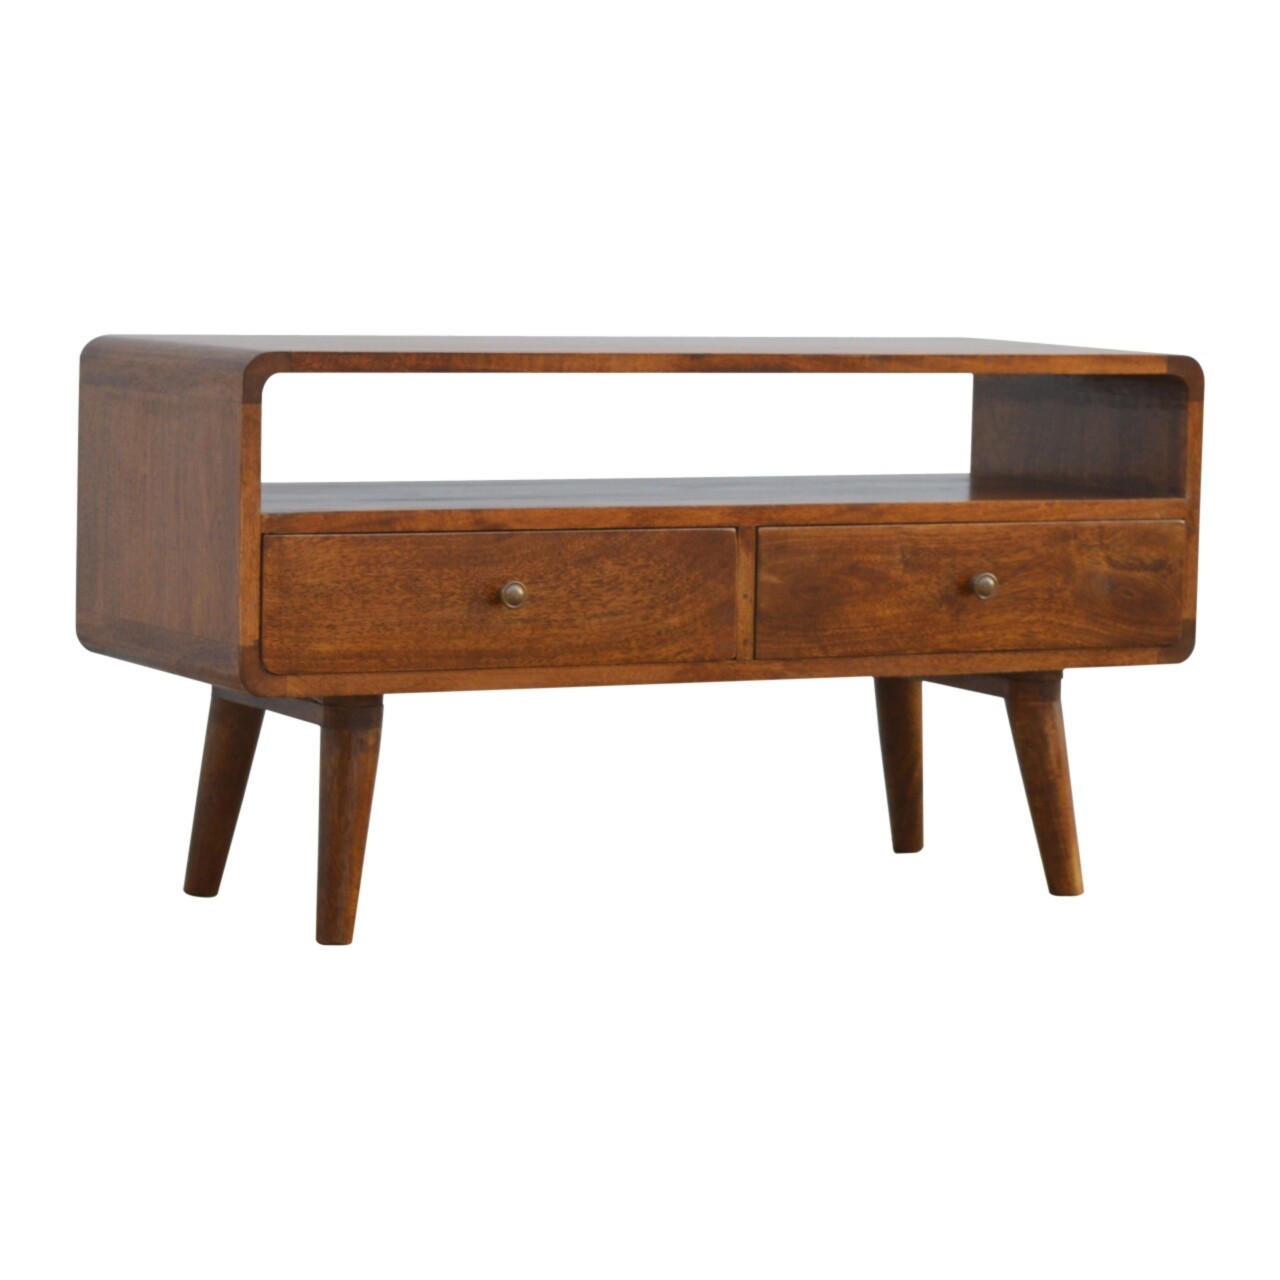 Coffee Table, 2 Drawer Curved  3 x 1.2 x 1.6